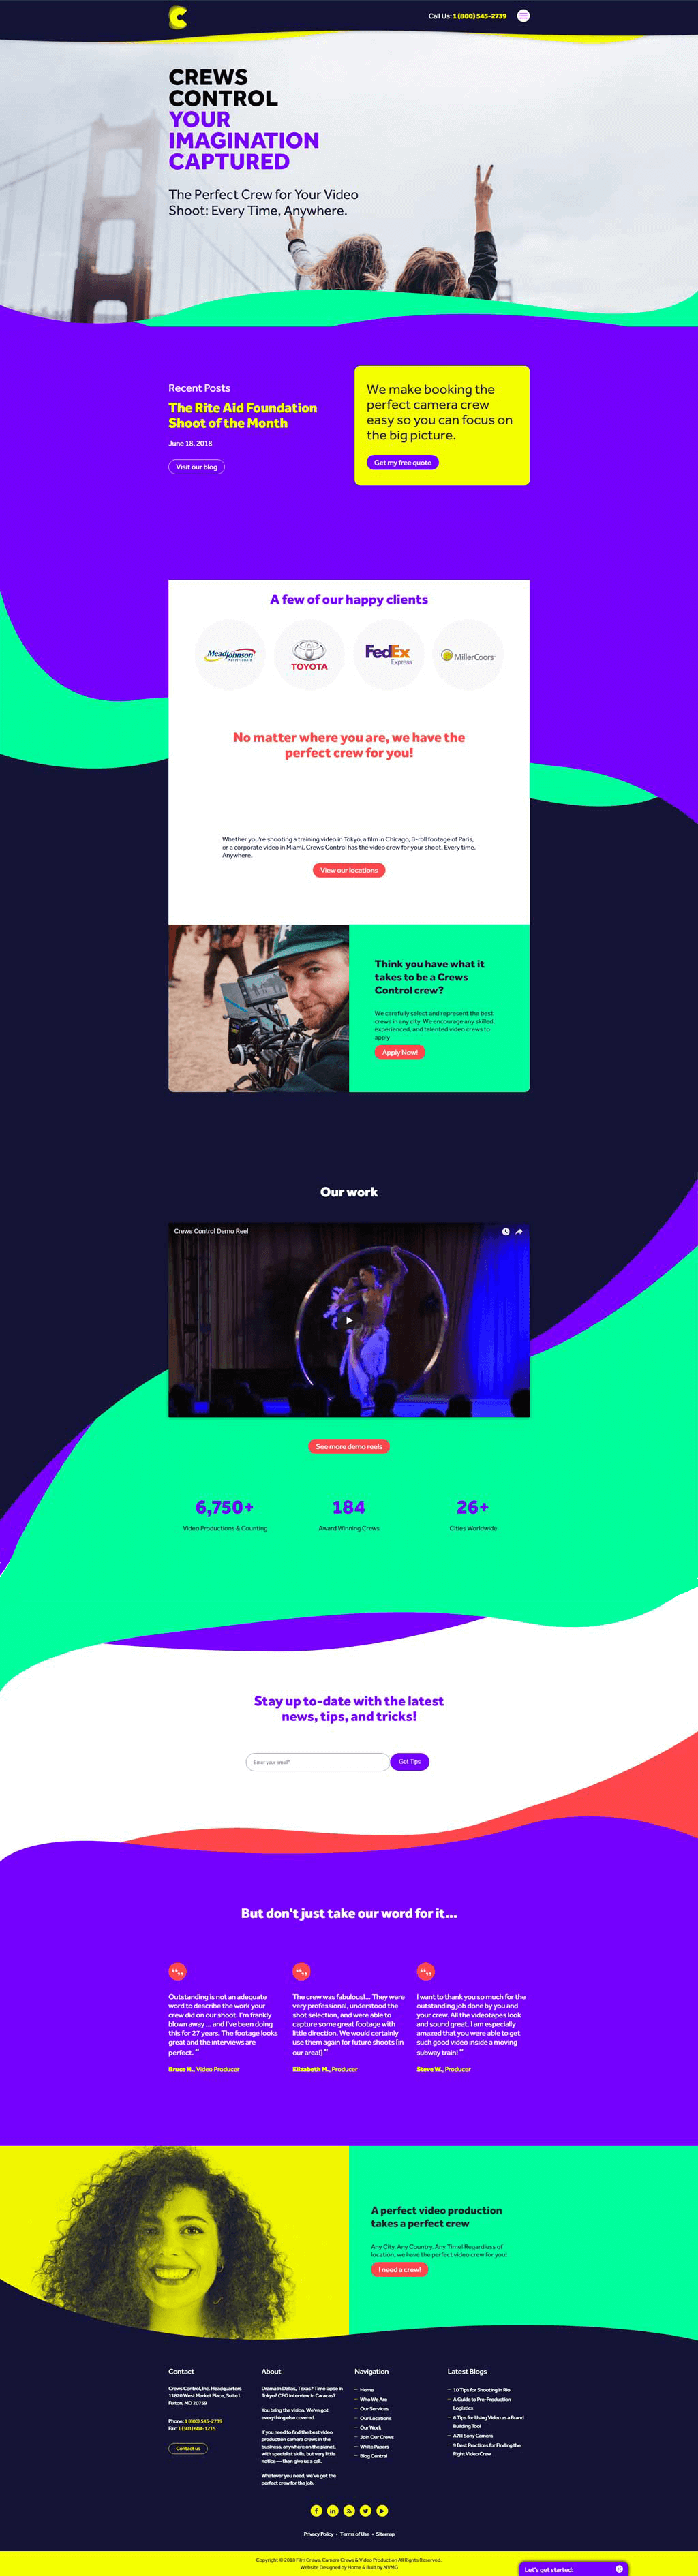 crewscontrol-homepage-after-multiverse-website-redesign 1